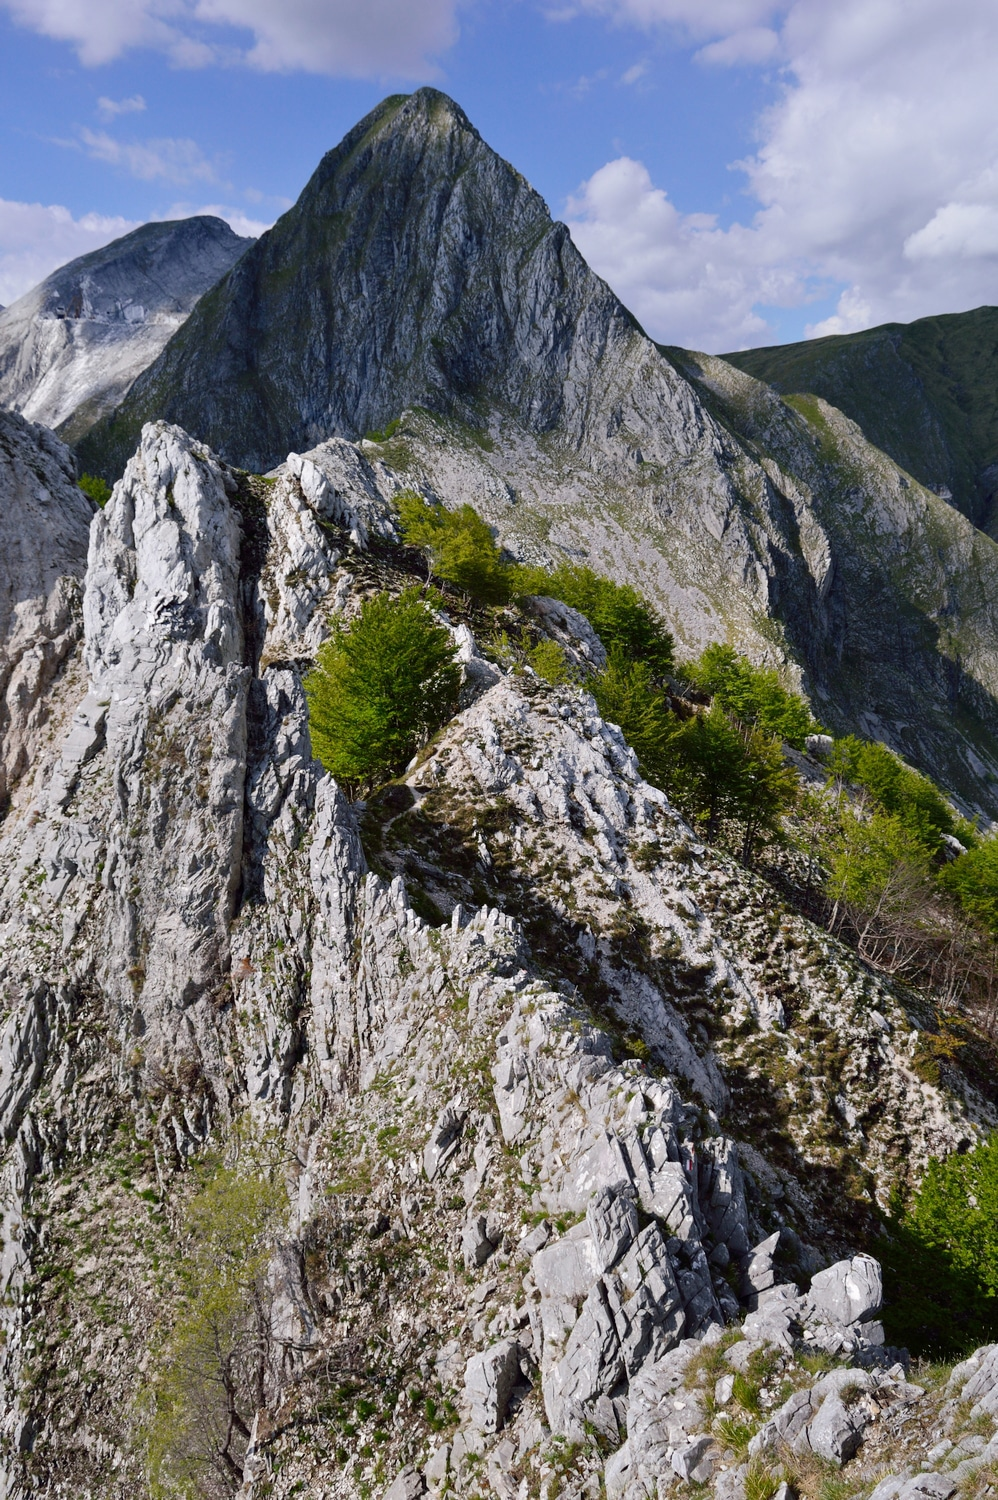 Schienale dell'Aasino Apuan Alps